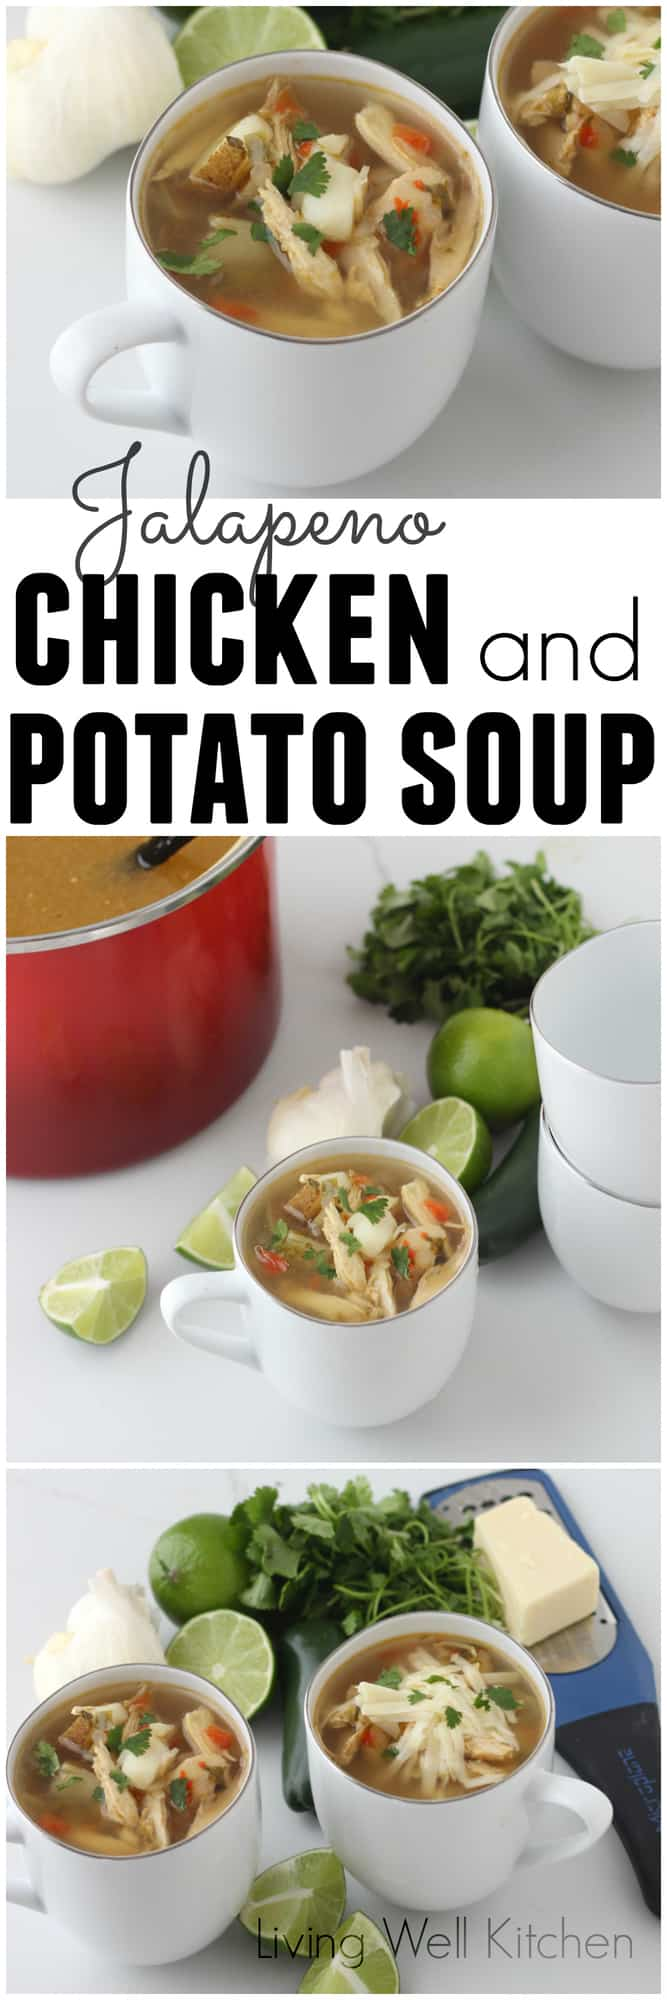 This budget friendly soup uses a whole chicken and tons of veggies for a spicy, tasty, nourishing meal in a bowl. Great to freeze for leftovers, this healthy Jalapeño Chicken and Potato Soup recipe is perfect for dinner or lunch